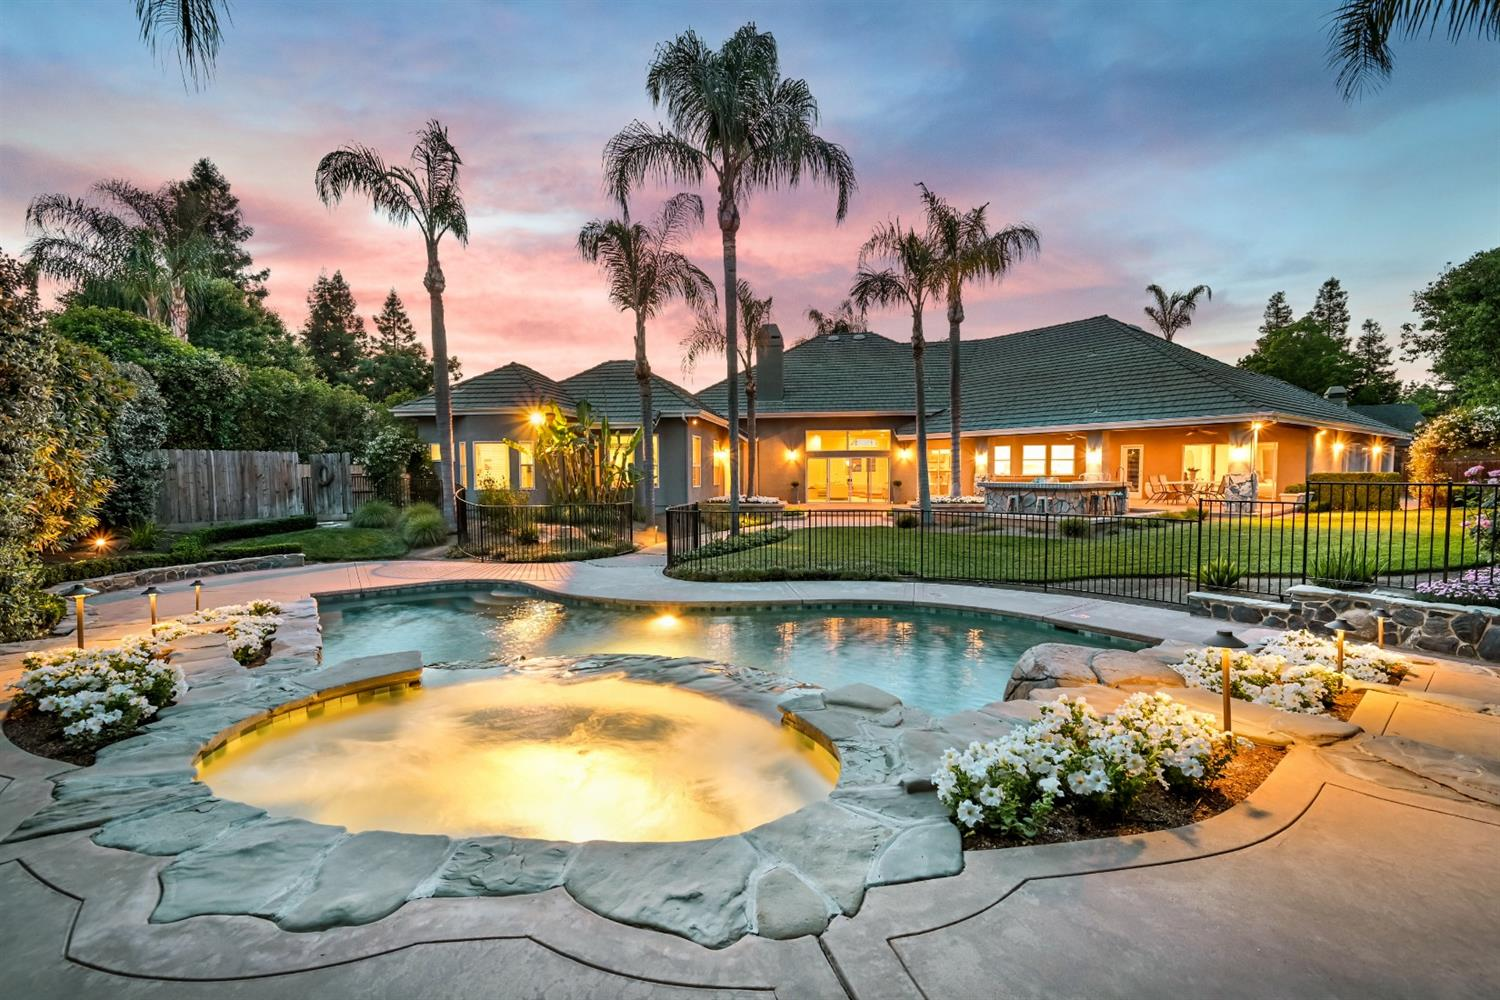 The grand front entry is followed by the great room and breathtaking view of the spa and pool. In the backyard you hear the waterfall and see beautiful lighting on palm trees and walkways - private resort feel including built-in BBQ, covered patio, sound system and plenty of room for guests. This one-story open floorplan home with unique ceiling treatments and two fireplaces has a kitchen with large center island, dual dishwashers, walk-in pantry and custom bar with refrigerator making an entertainer's dream. The Family room and Library/Office have built-in shelves and cabinets. This custom home was built with tons of storage. Spacious Master bedroom with newly remodeled bathroom, dual sinks and shower heads, rain shower, tub and large walk-in closet. Bedrooms features include en-suite bathrooms, walk-in closets and back patio access. Single car garage has storage and built-in-shelving. Two-car garage has a workshop and more storage with built-in shelving. Custom black iron pool fence.